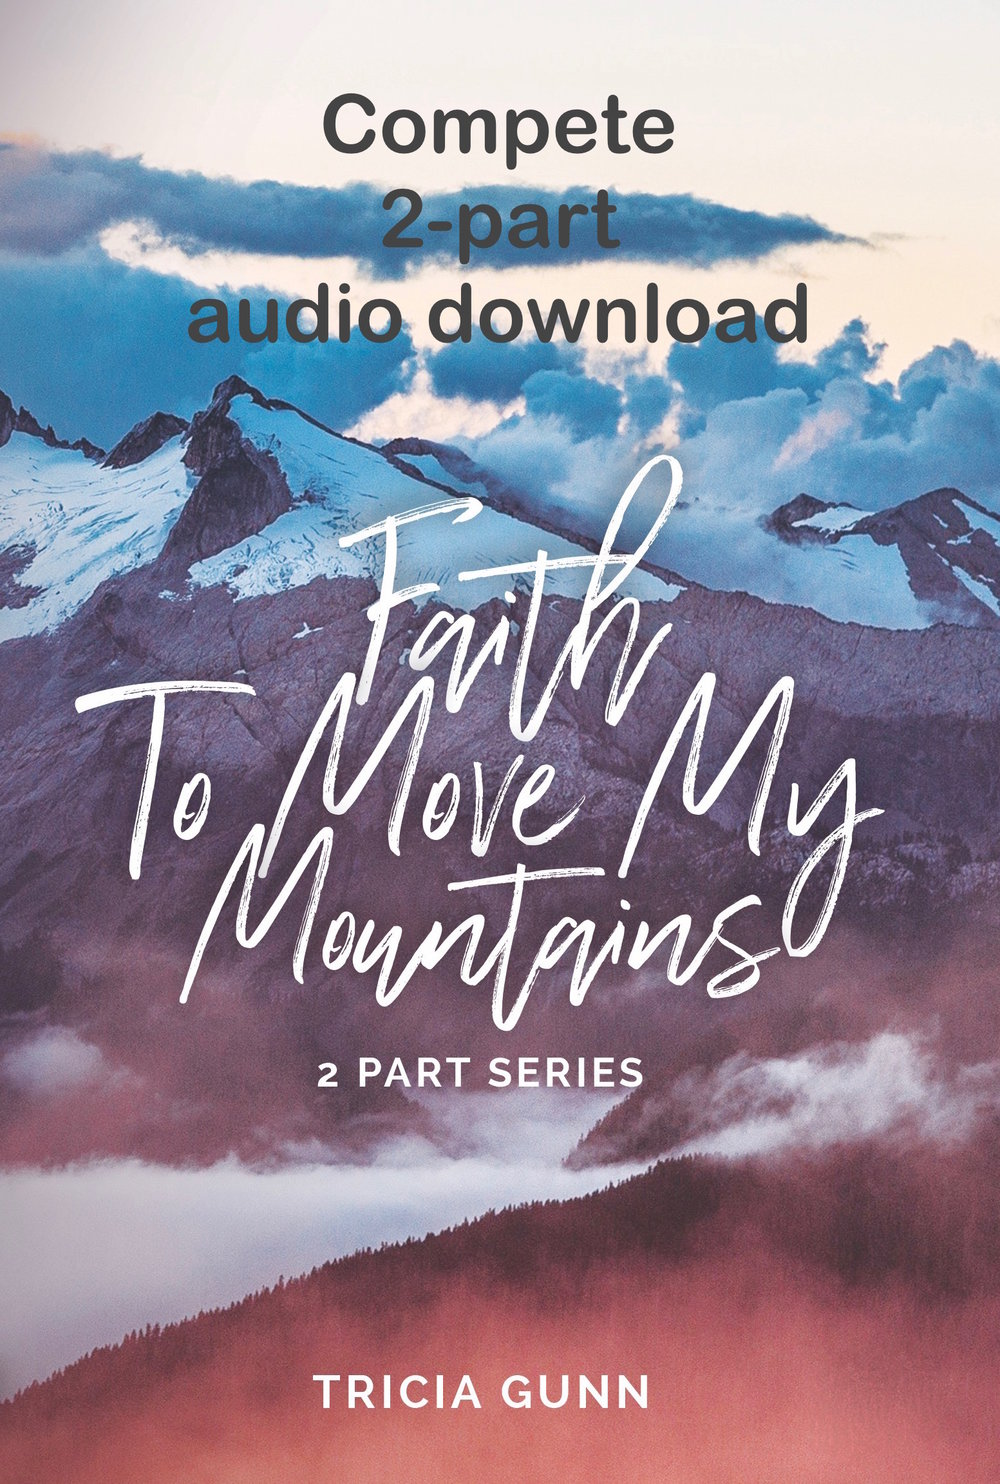 Purchase complete 2-part AUDIO series